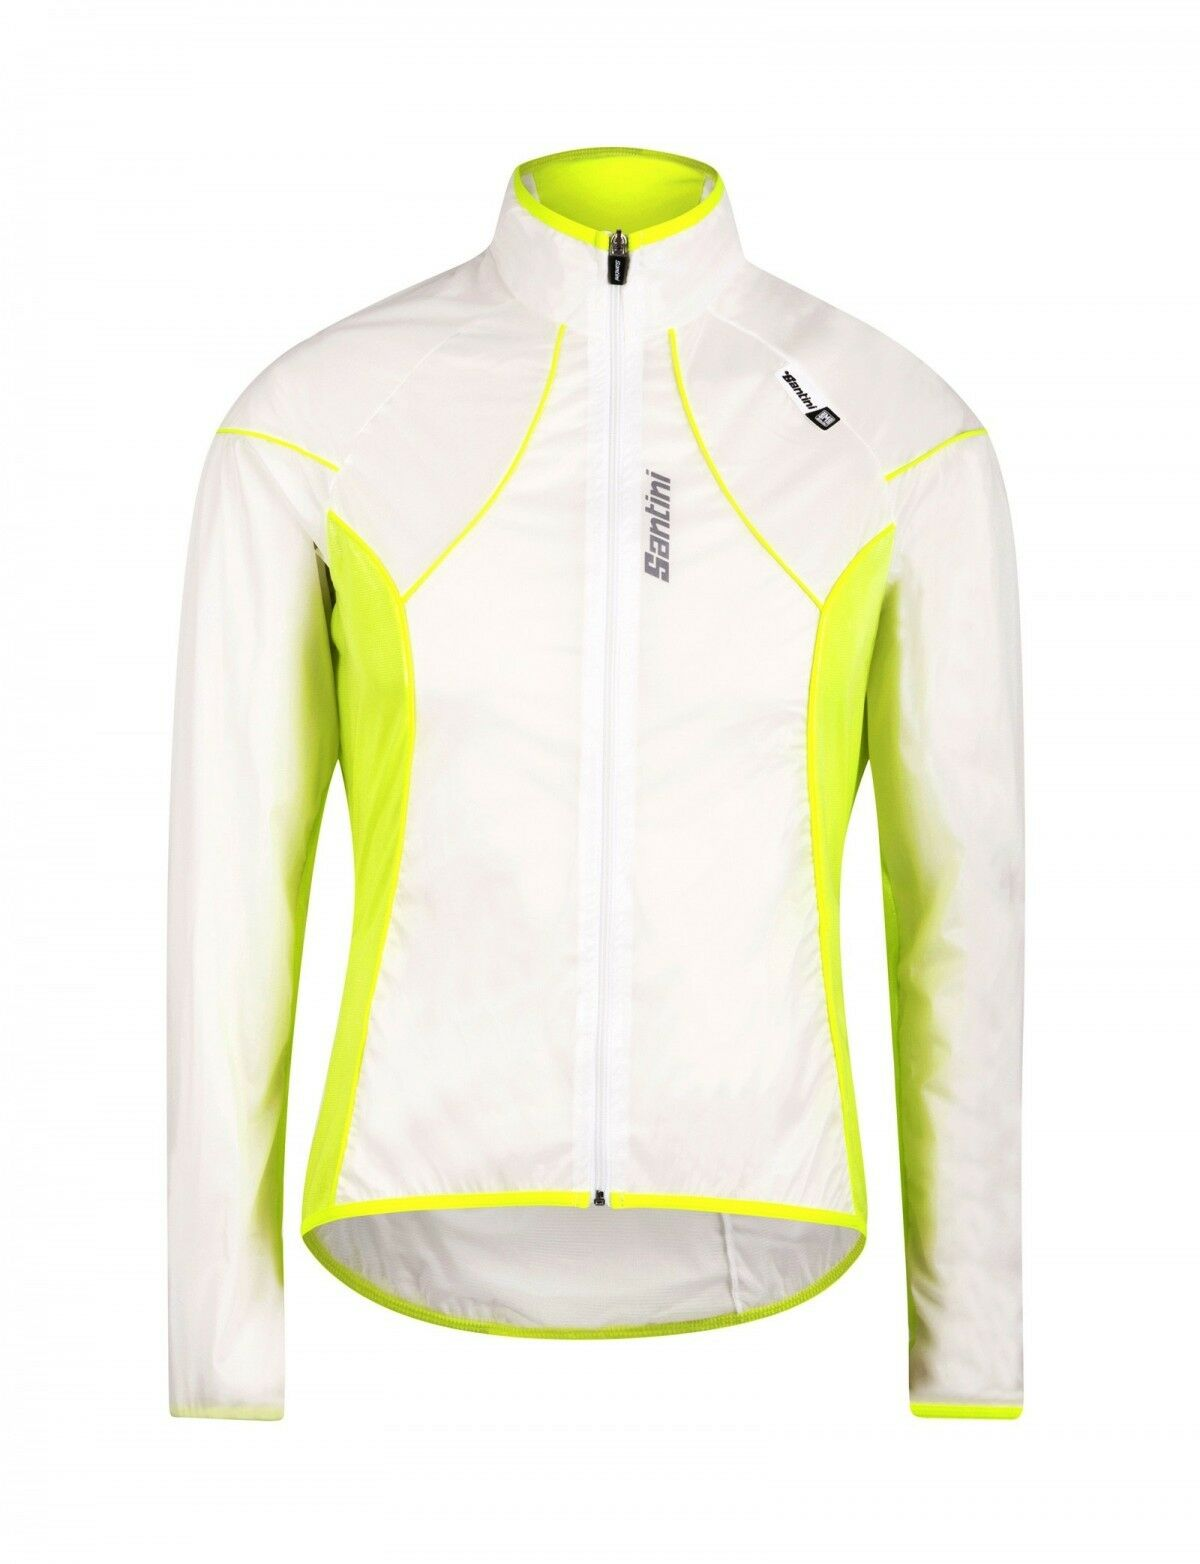 CAPE SANTINI ICE 2 FLUORESCENT YELLOW SIZE XS